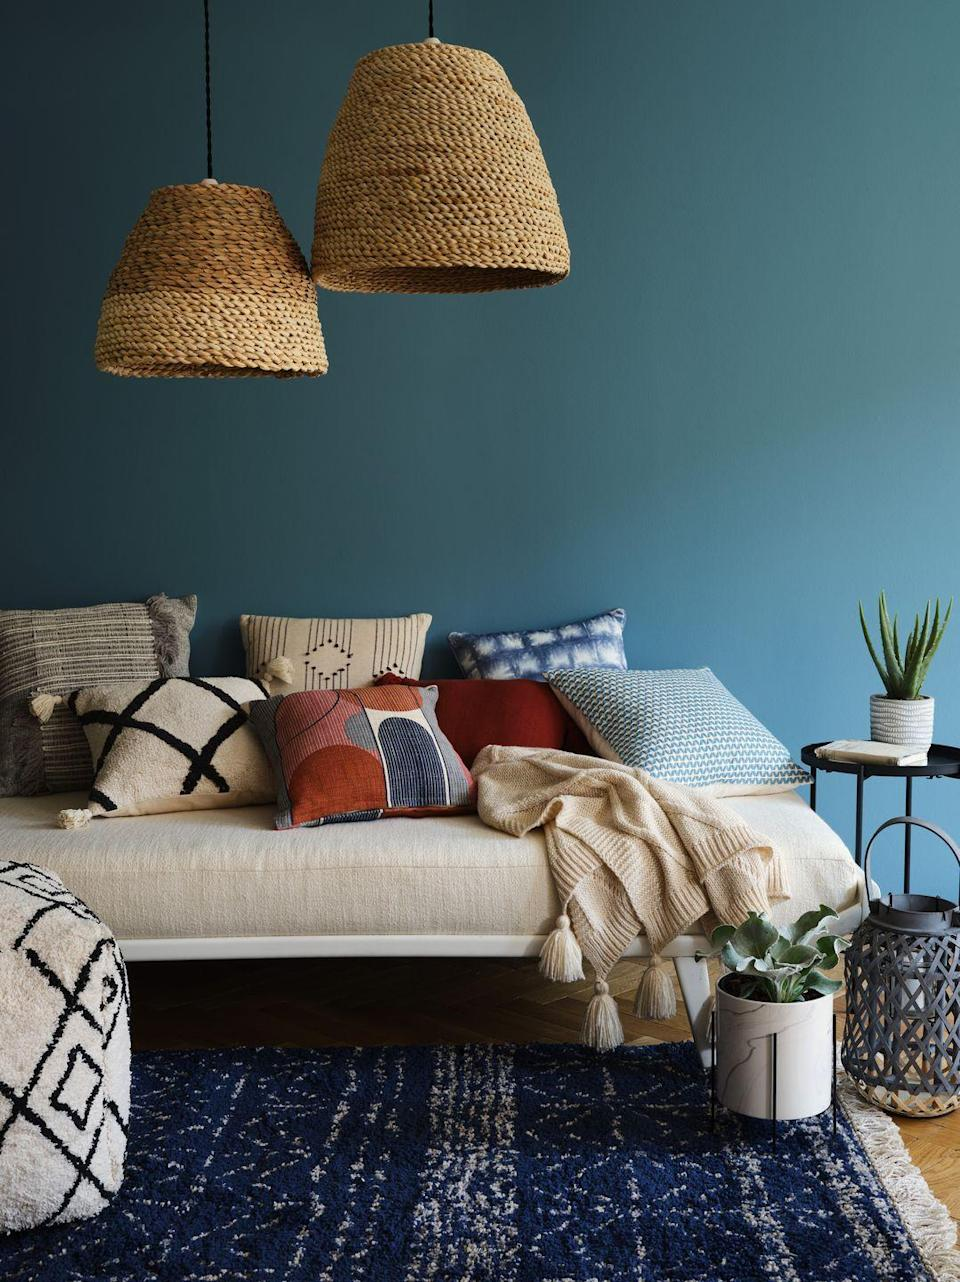 """<p>We're big fans of the Other World trend, which is brimming with gorgeous textures and nature-inspired <a href=""""https://www.housebeautiful.com/uk/decorate/walls/a37022238/instagrammable-paint-colours-summer/"""" rel=""""nofollow noopener"""" target=""""_blank"""" data-ylk=""""slk:hues"""" class=""""link rapid-noclick-resp"""">hues</a>. </p><p>'Blues and oranges blend with natural woods and reactive glazes for a warm ambiance to the trend,' say George Home. 'Raw finishes, marbles and matt ceramics span across an earthy colour palette for a contemporary finish.' </p><p><a class=""""link rapid-noclick-resp"""" href=""""https://direct.asda.com/george/home/D26,default,sc.html"""" rel=""""nofollow noopener"""" target=""""_blank"""" data-ylk=""""slk:SHOP NOW"""">SHOP NOW</a></p>"""